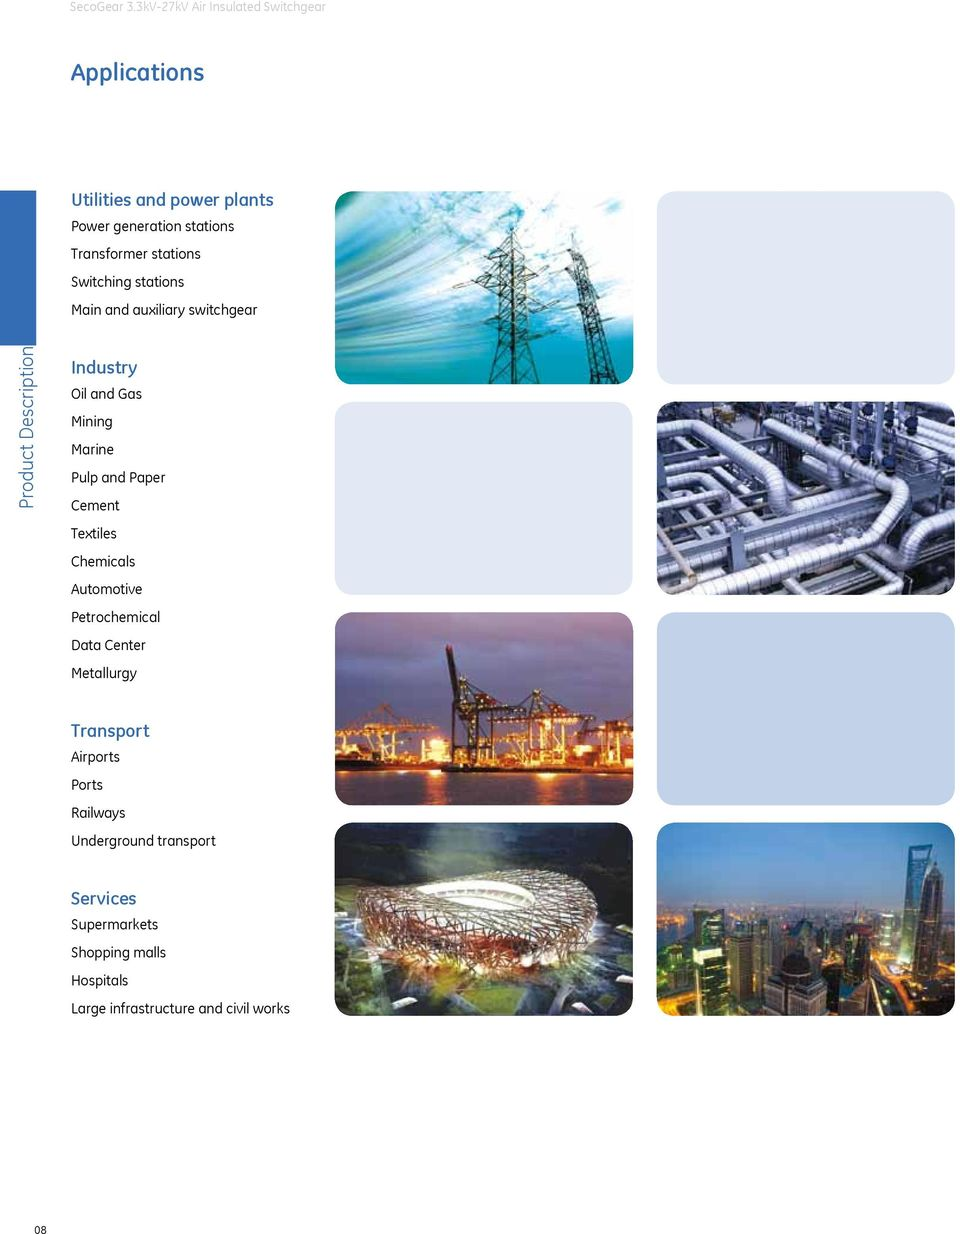 Cement Textiles Chemicals Automotive Petrochemical Data Center Metallurgy Transport Airports Ports